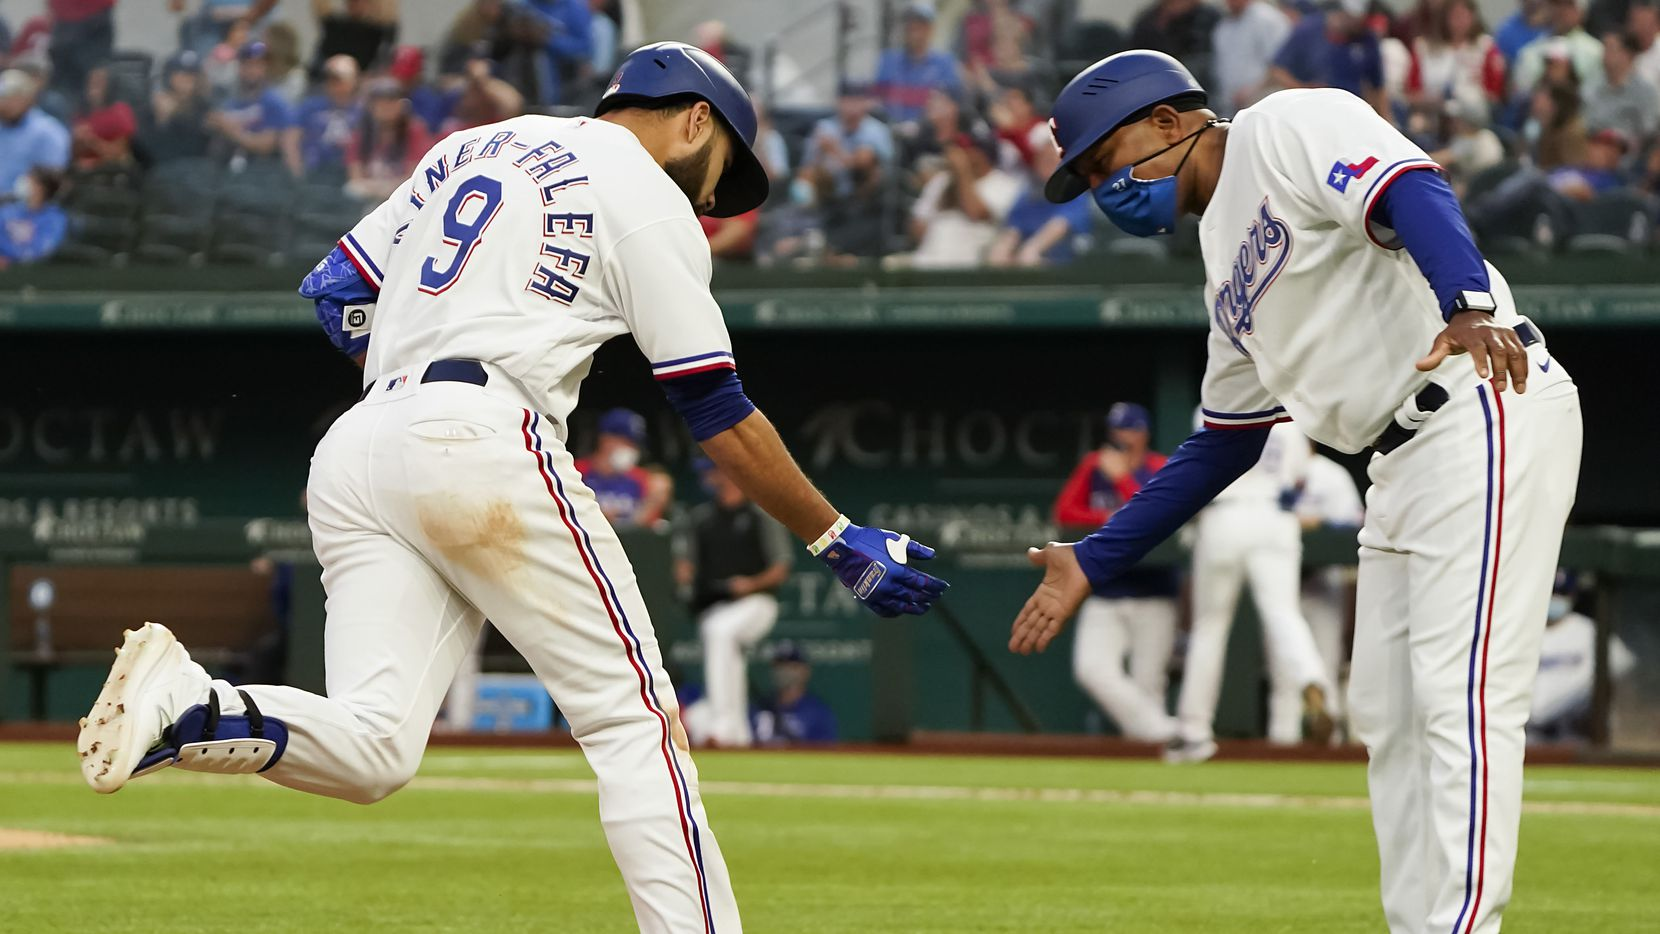 Texas Rangers shortstop Isiah Kiner-Falefa celebrates with third base coach Tony Beasley after hitting a solo home run during the fifth inning against the San Diego Padres at Globe Life Field on Saturday, April 10, 2021. (Smiley N. Pool/The Dallas Morning News)